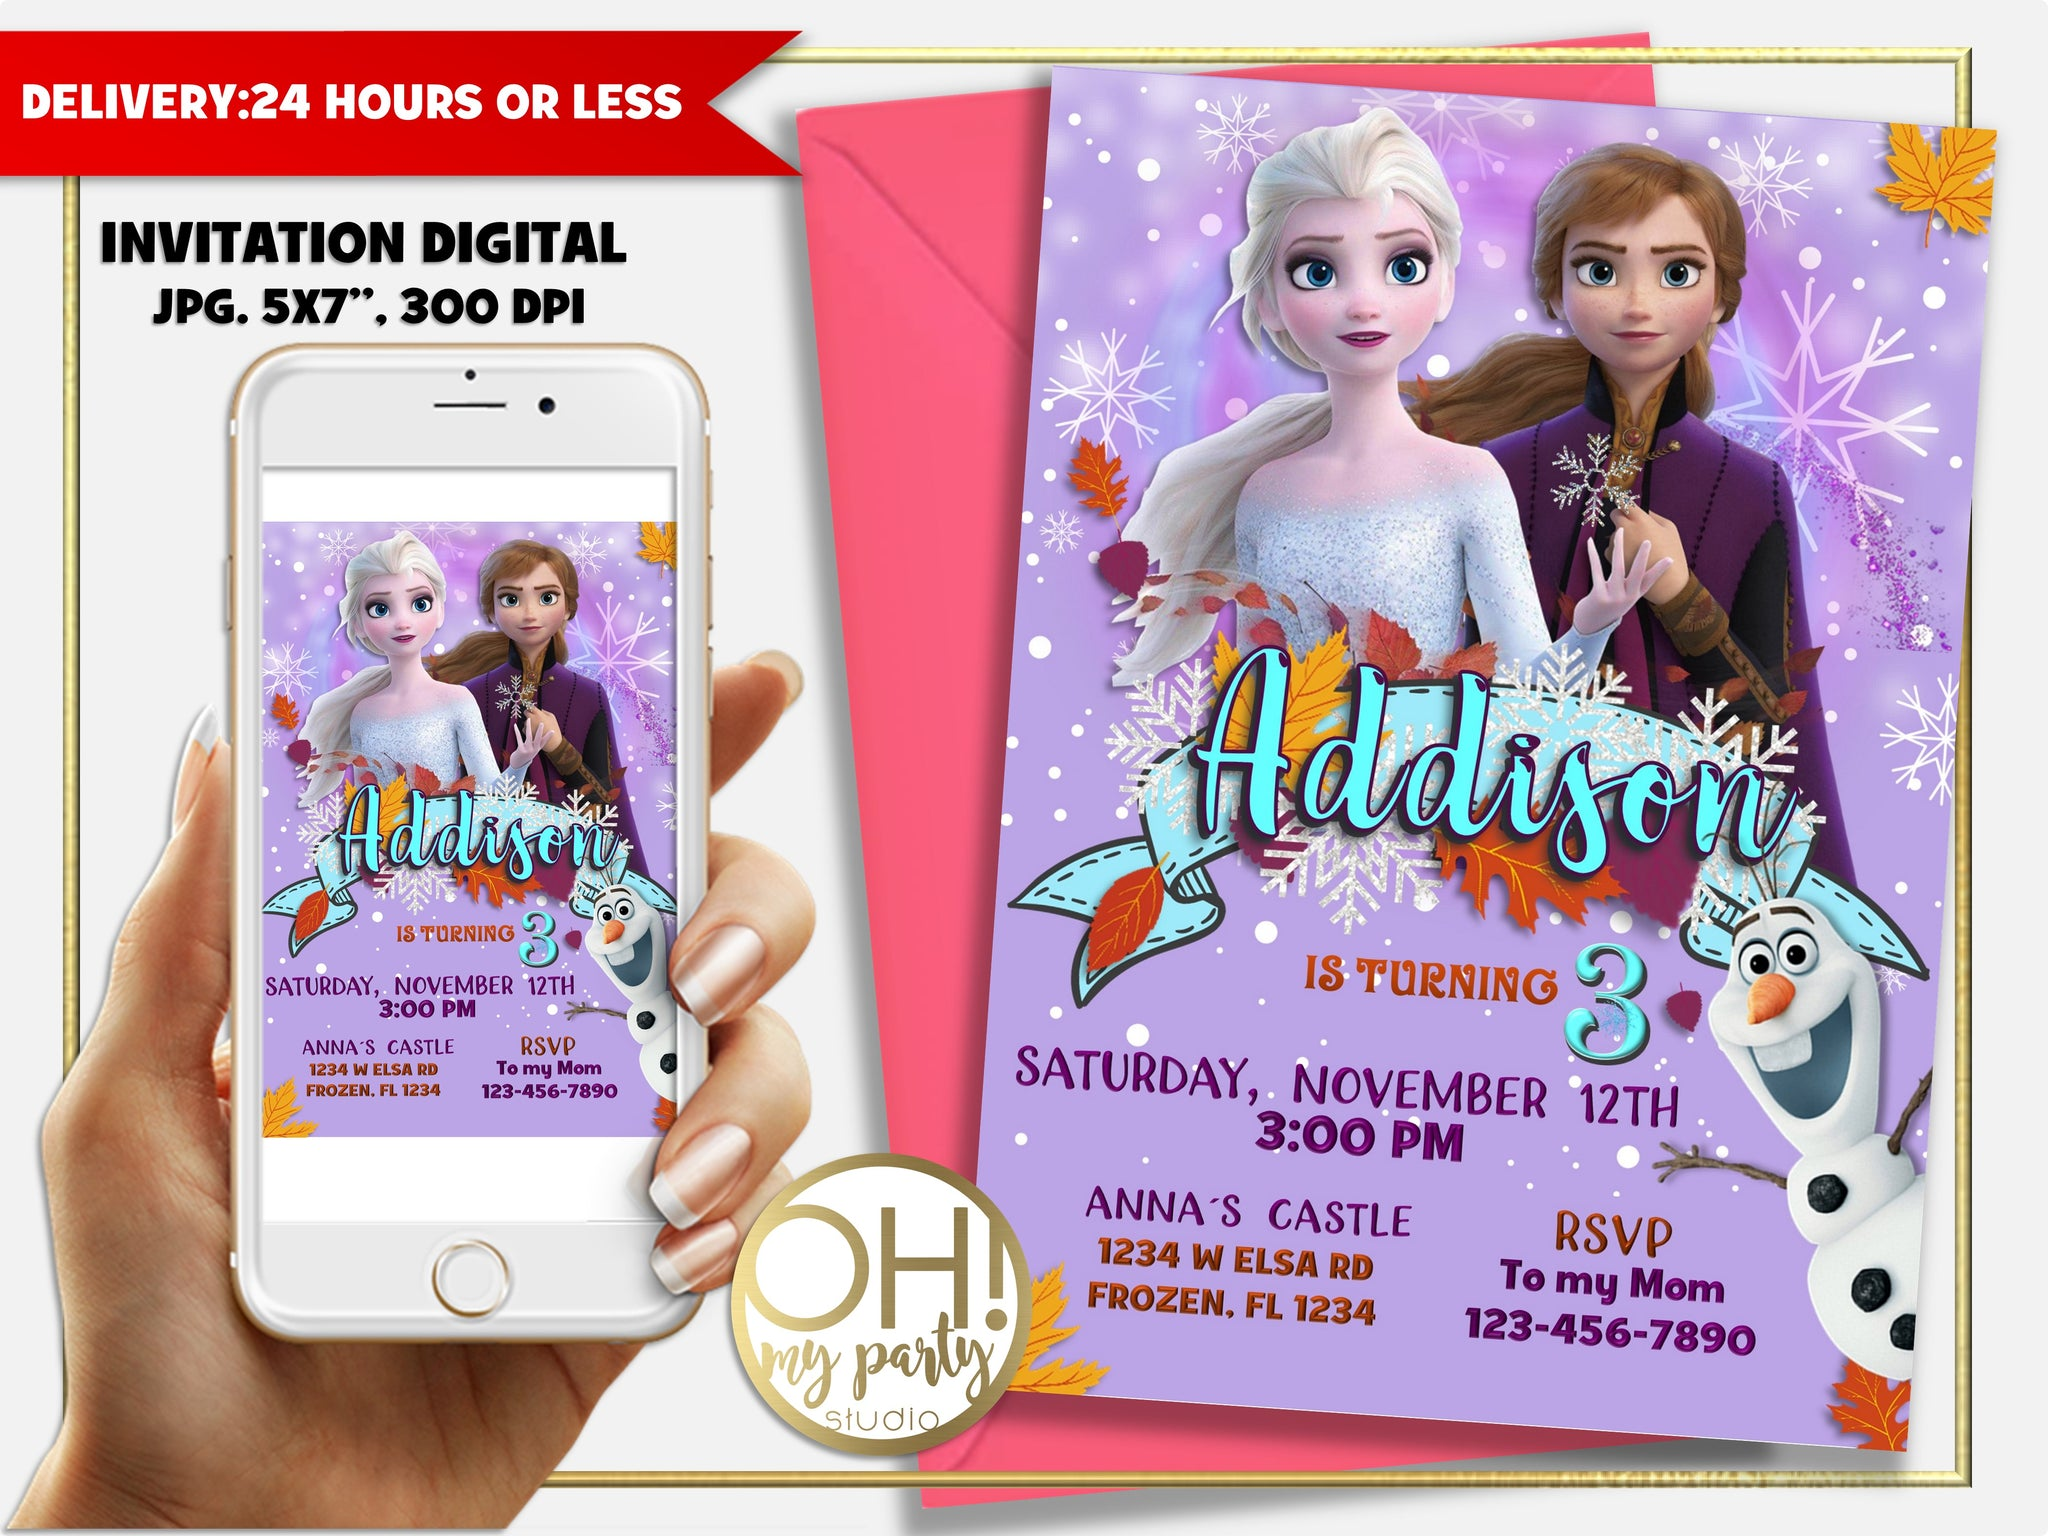 FROZEN 2 BIRTHDAY PARTY, FROZEN 2 INVITATION, FROZEN 2 INVITATIONS, FROZEN 2 BIRTHDAY, FROZEN 2 PARTY, FROZEN 2 PARTY INVITATION, FROZEN 2 PARTY IDEAS, FROZEN 2 PARTY DECORATION, FORZEN 2 INVITE, FROZEN 2 CARD, FROZEN 2 DIGITAL INVITATION, FROZEN 2 INVITATION DIGITAL, FROZEN 2 INVITACIÓN, FROZEN 2 INVITACIÓN DIGITAL